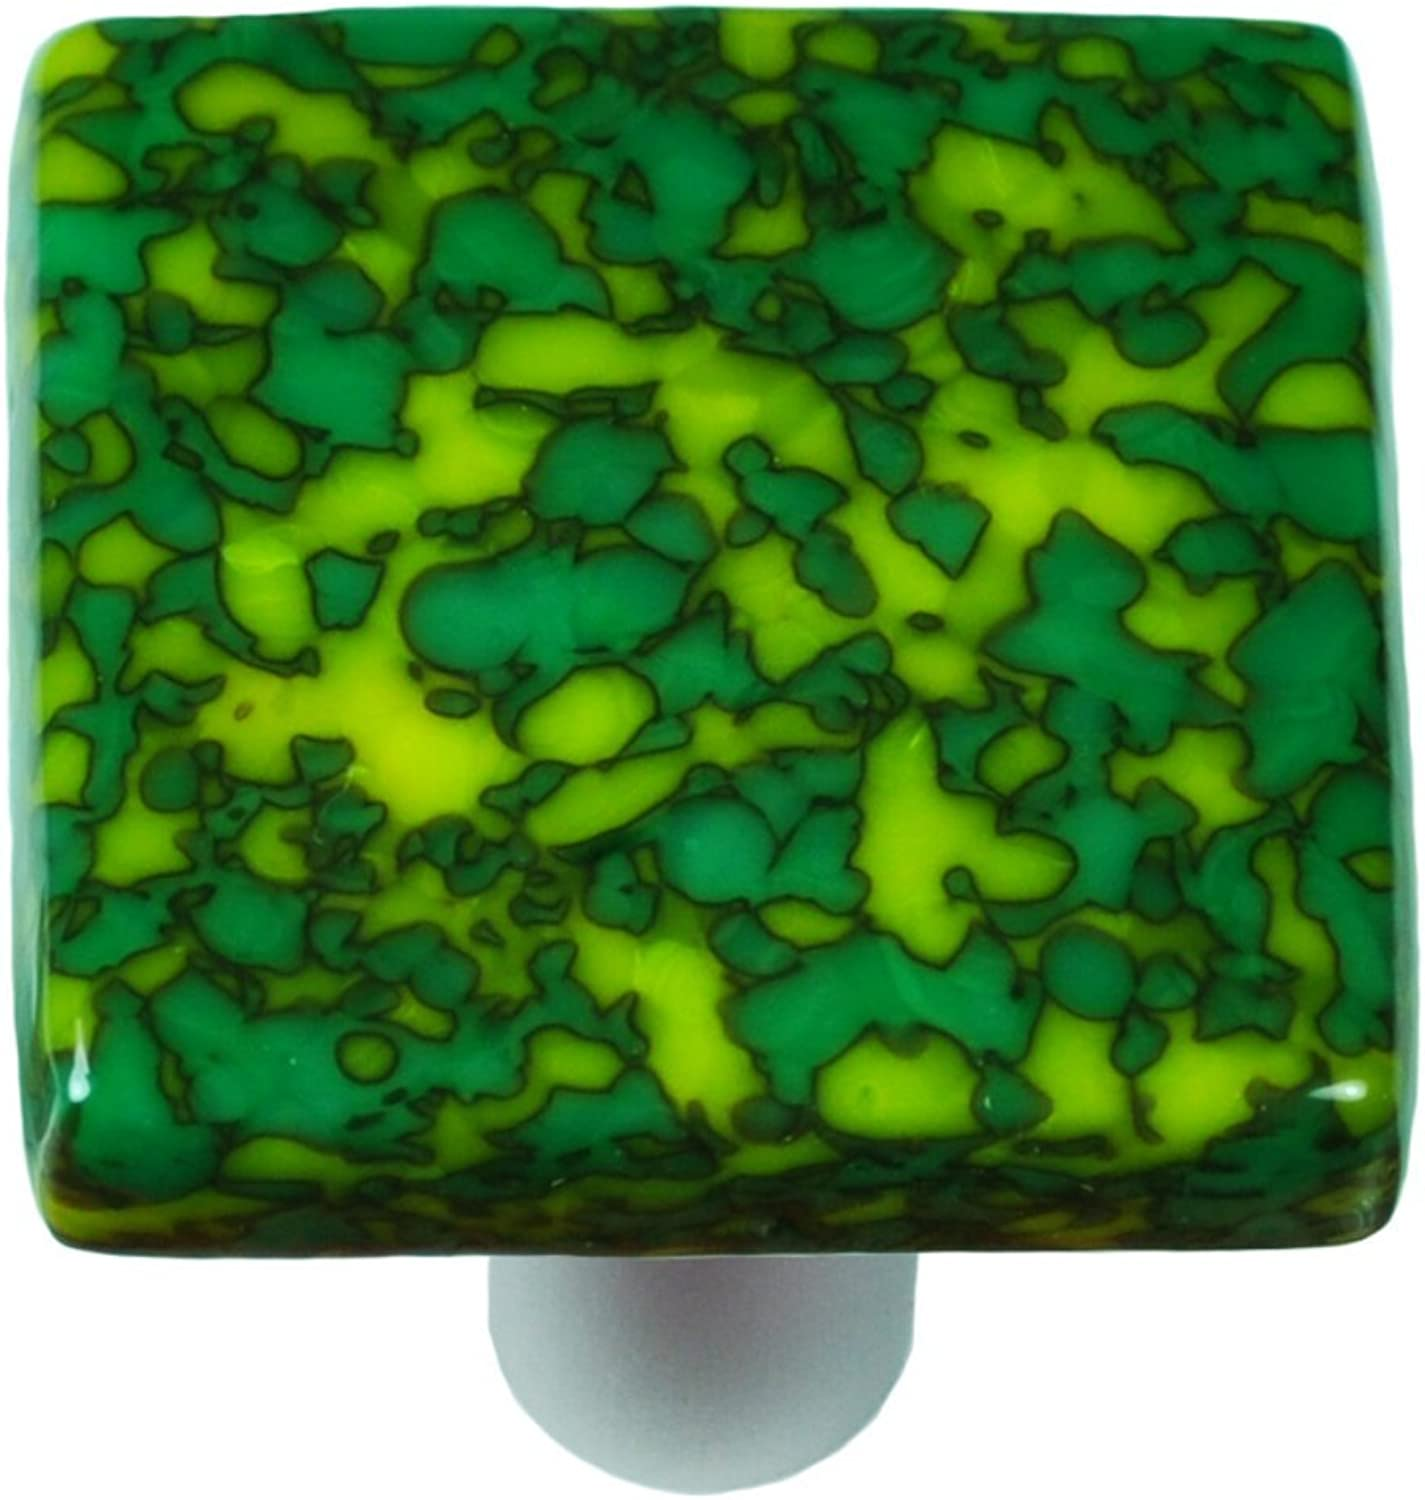 Hot Knobs HK8051-KB Granite Sunflower Yellow & Jade Green Square Glass Cabinet Knob - Black Post